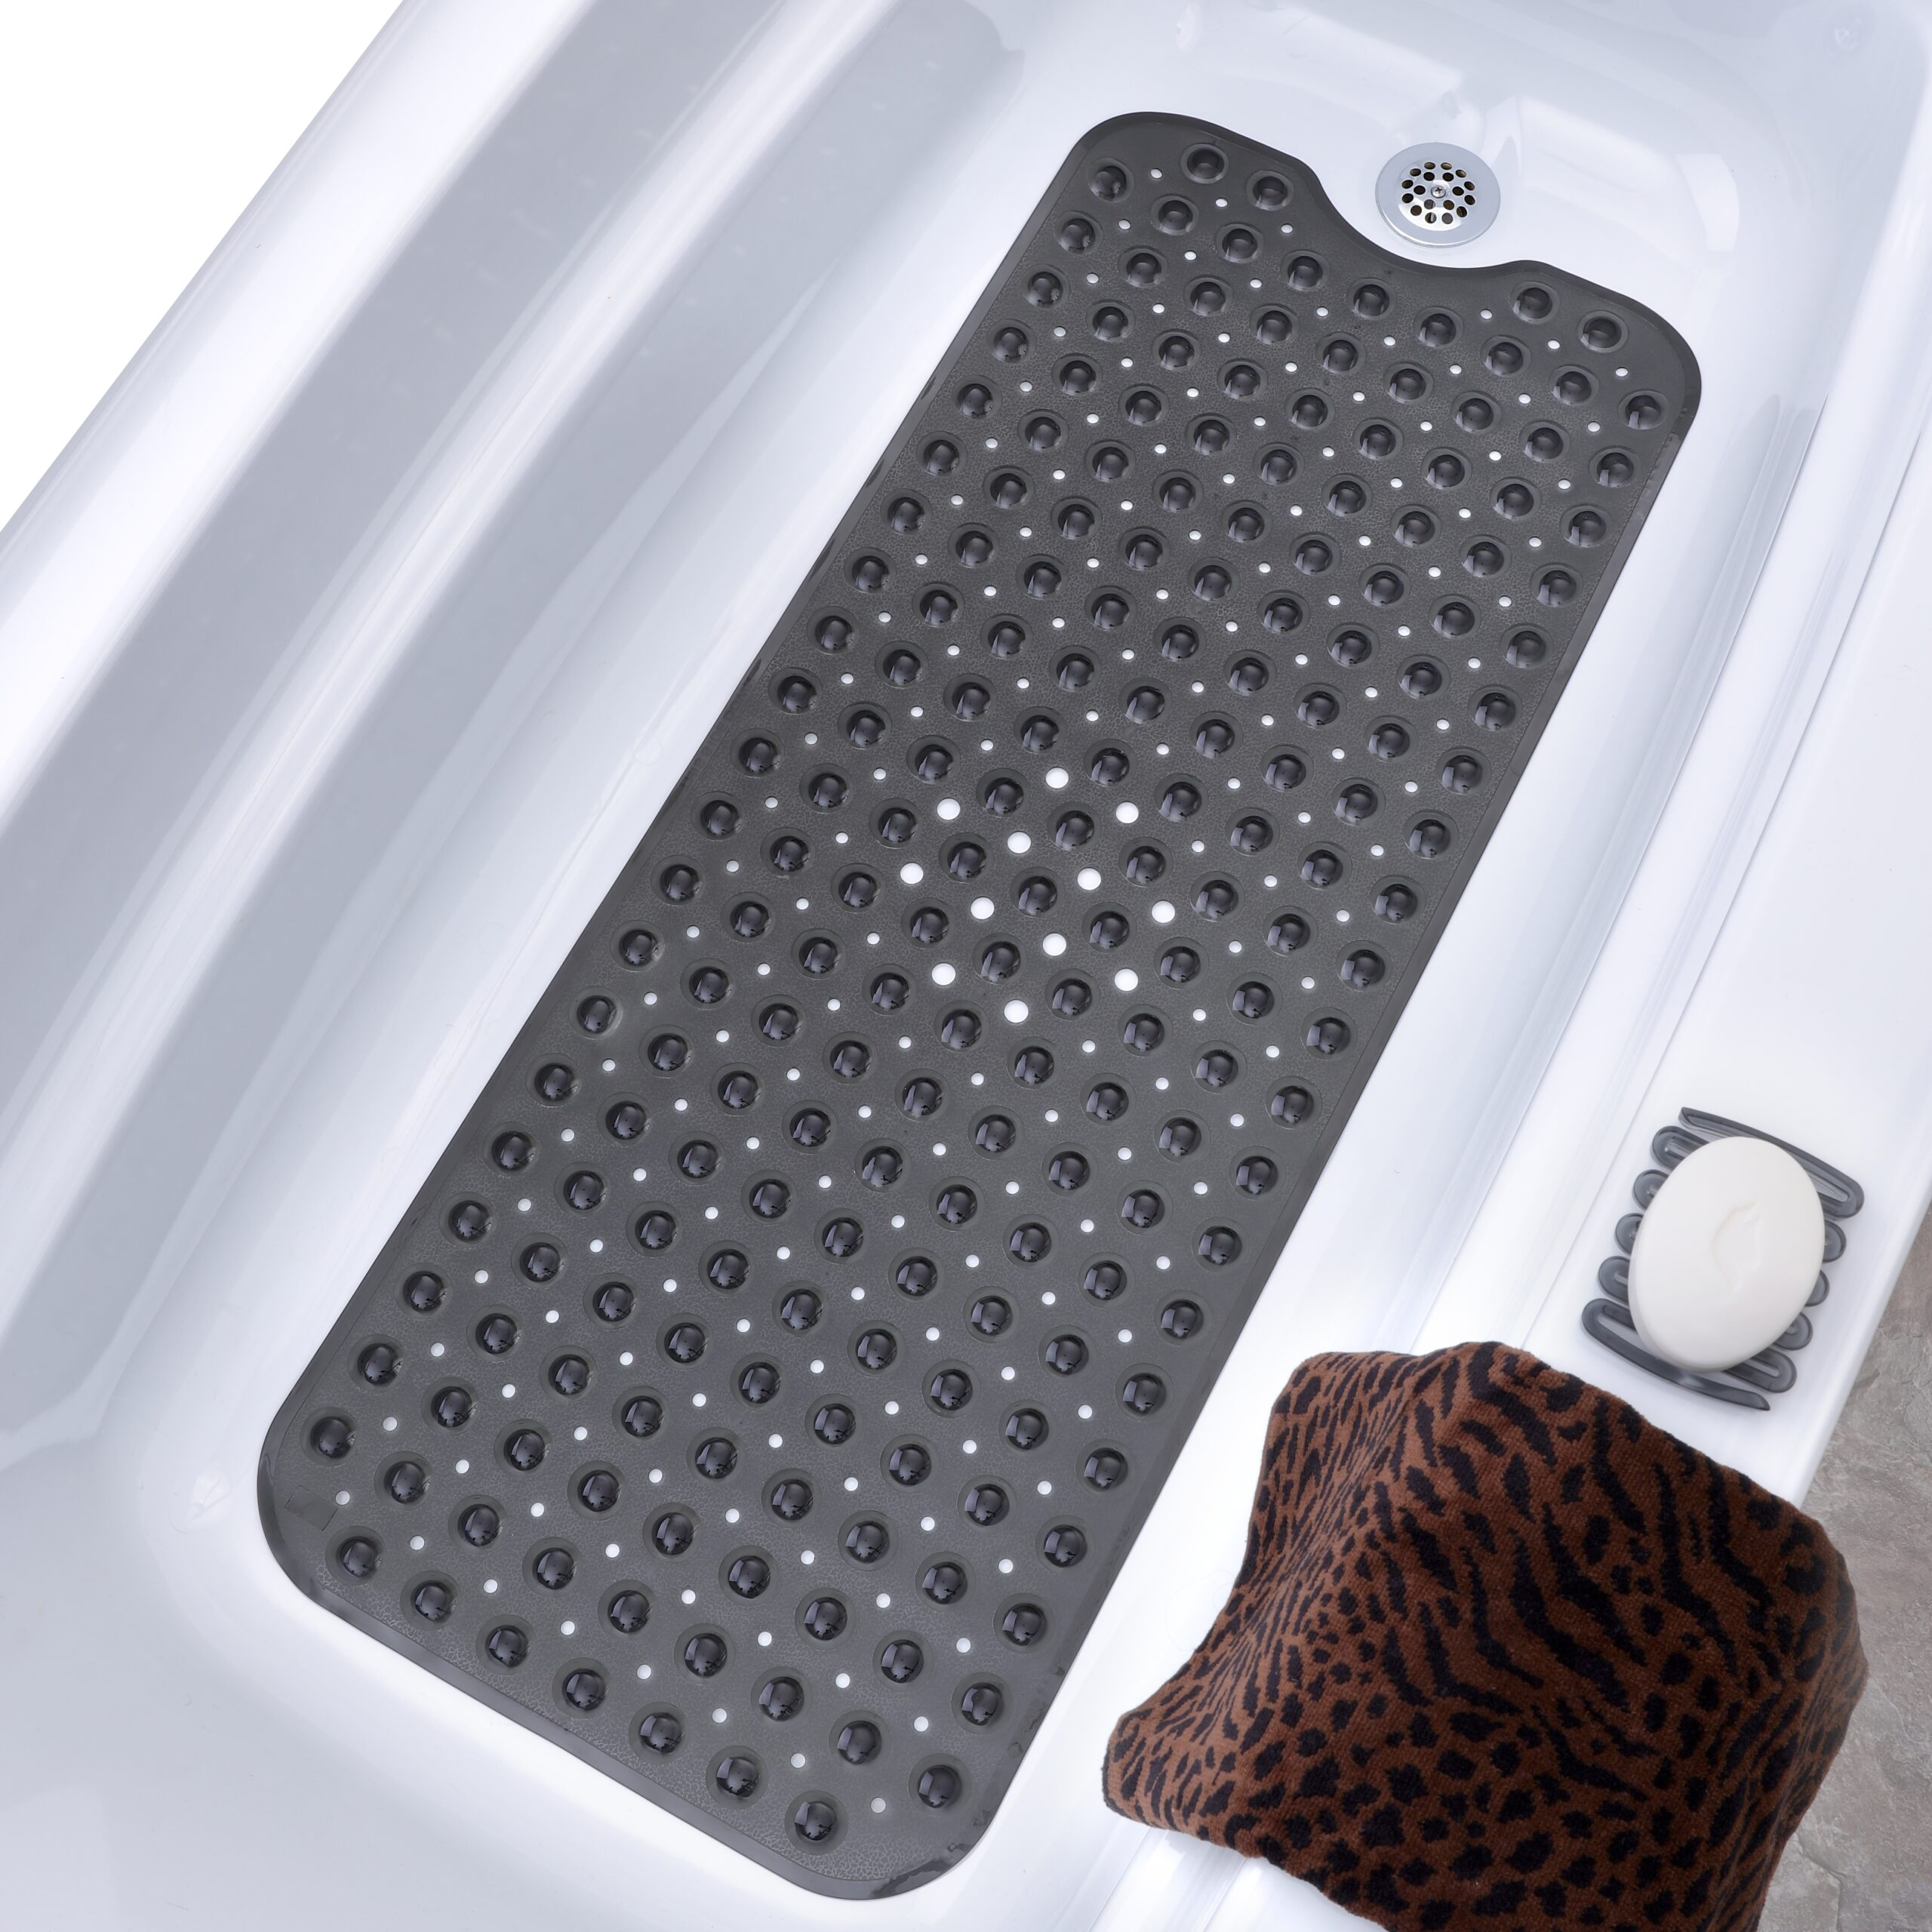 Extra Long Bath Mats Large Non Slip Tub Shower Mats Slipx Solutions